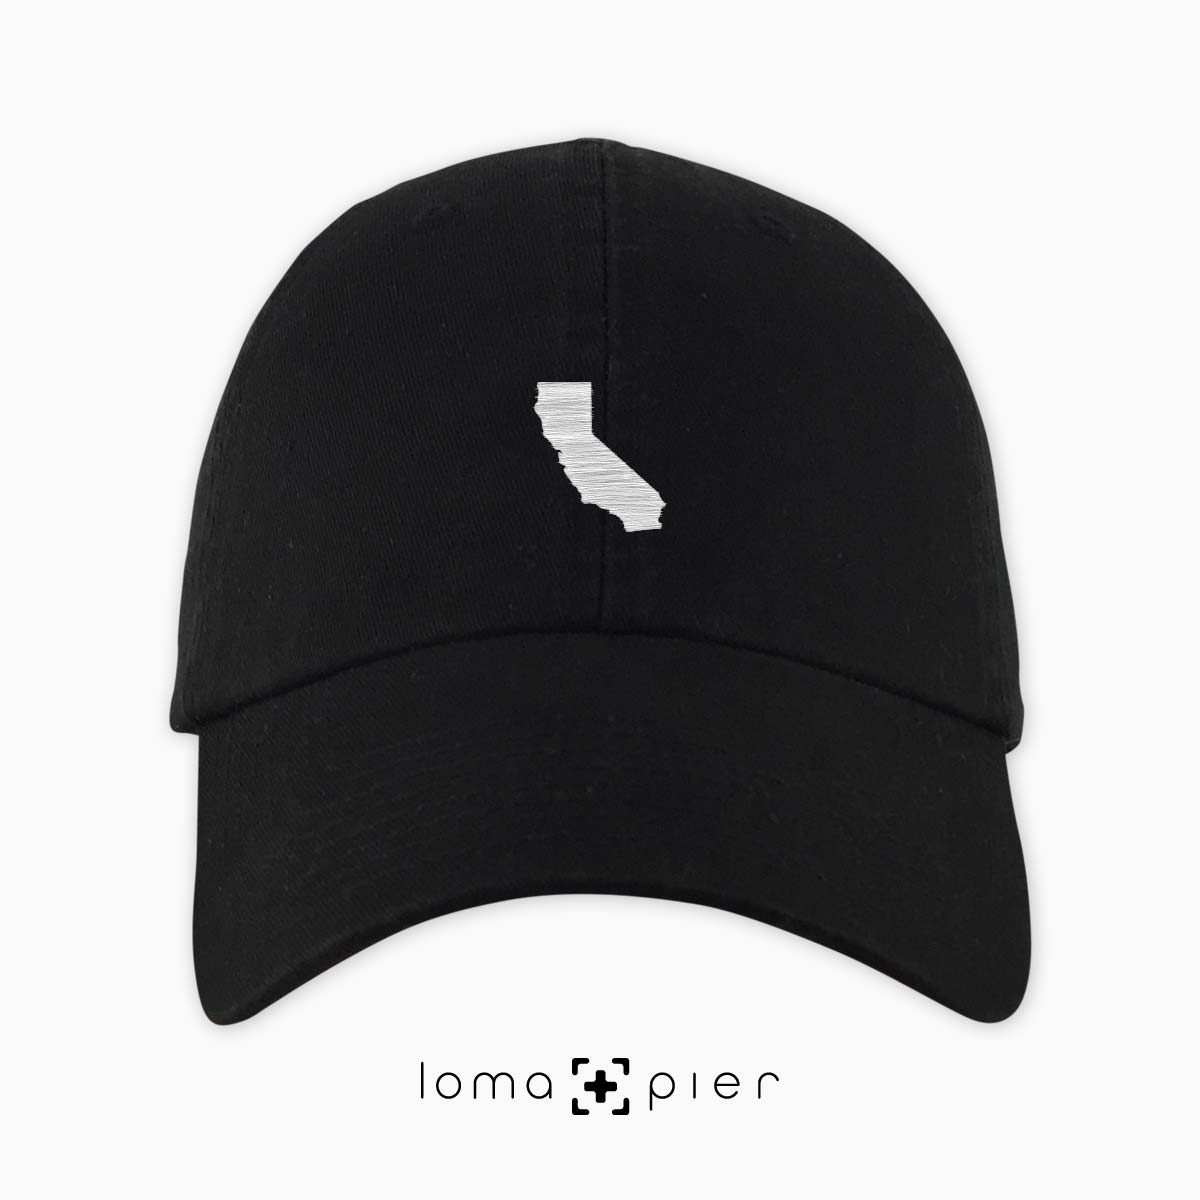 CALIFORNIA silhouette icon embroidered on a black unstructured dad hat by loma+pier hat store made in the USA